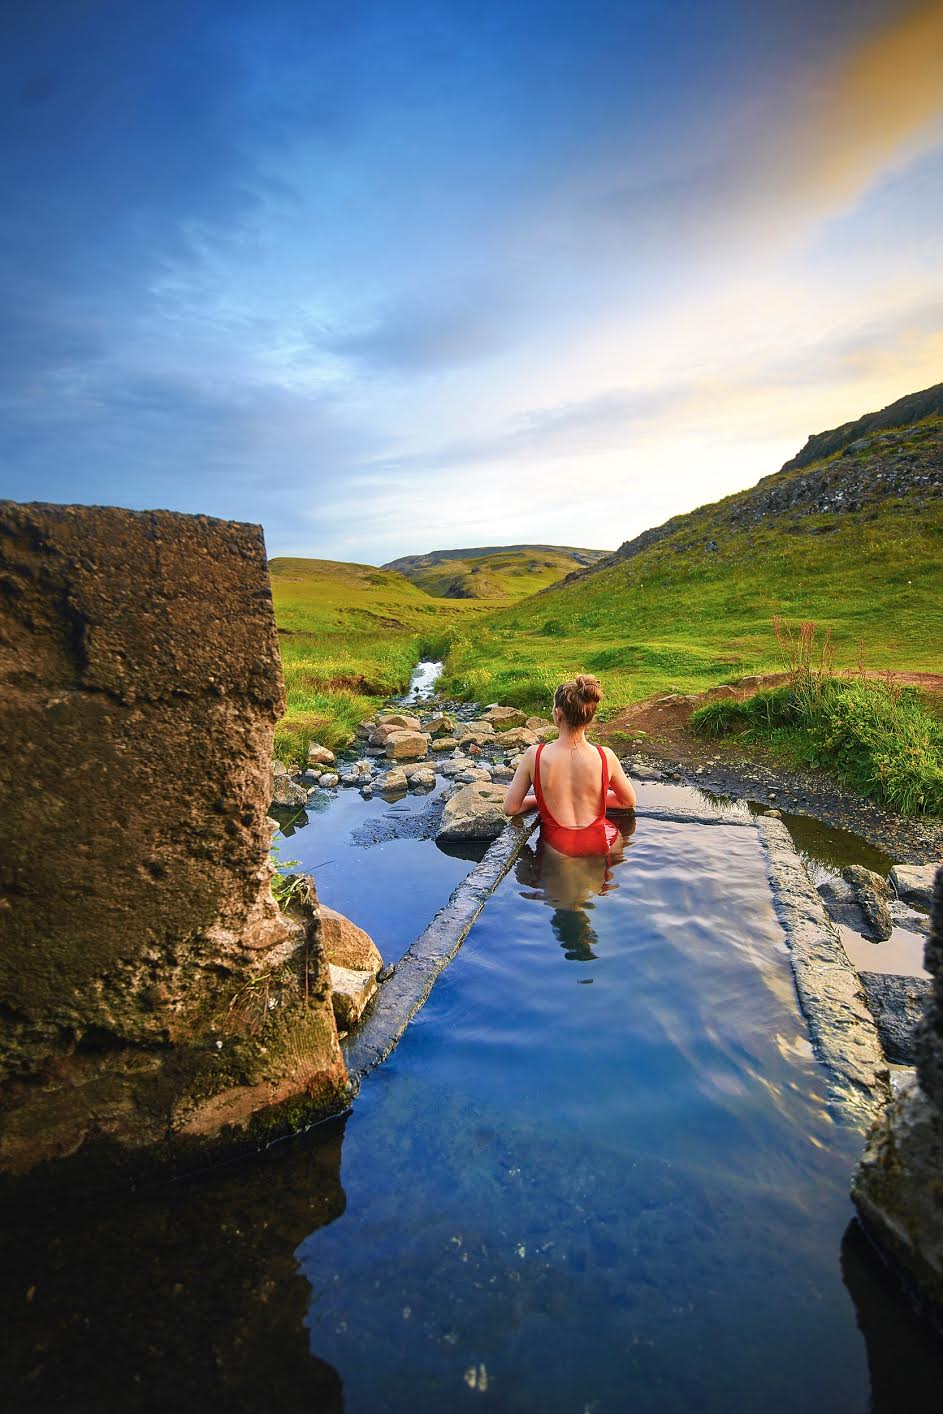 woman in red bathing suit soaking in hot spring tub at sunset